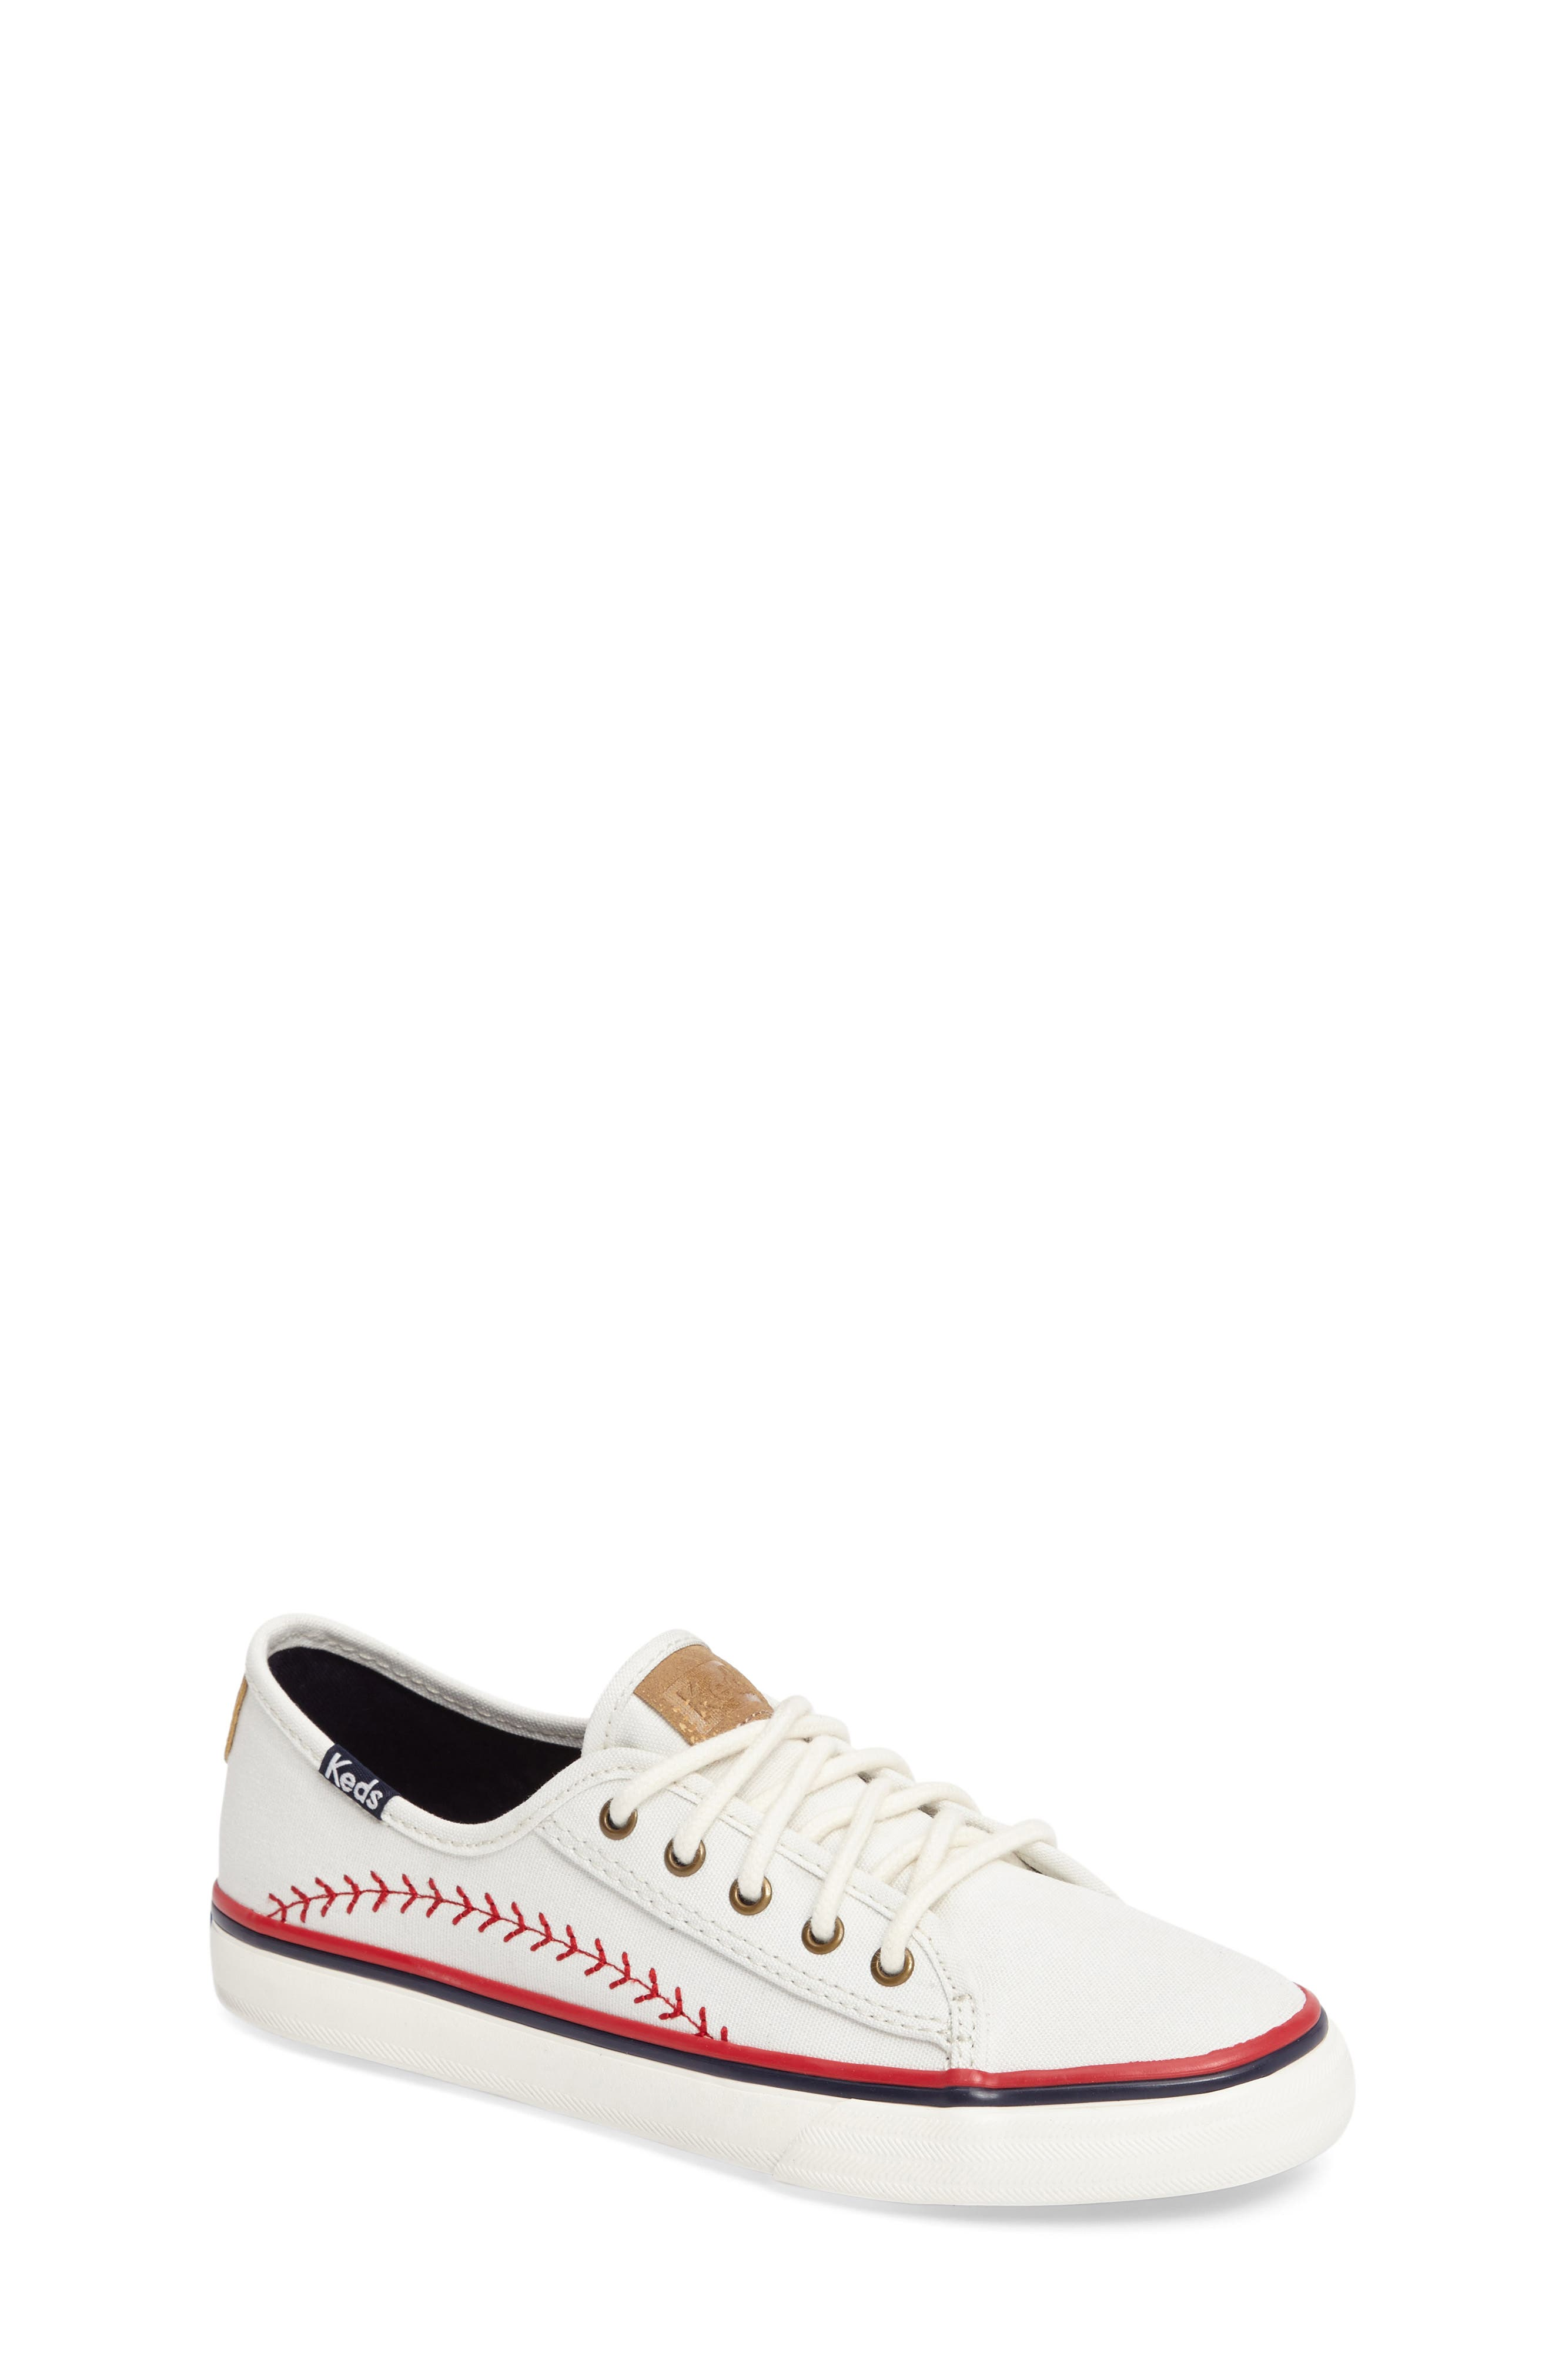 KEDS<SUP>®</SUP> Pennant Double Up Sneaker